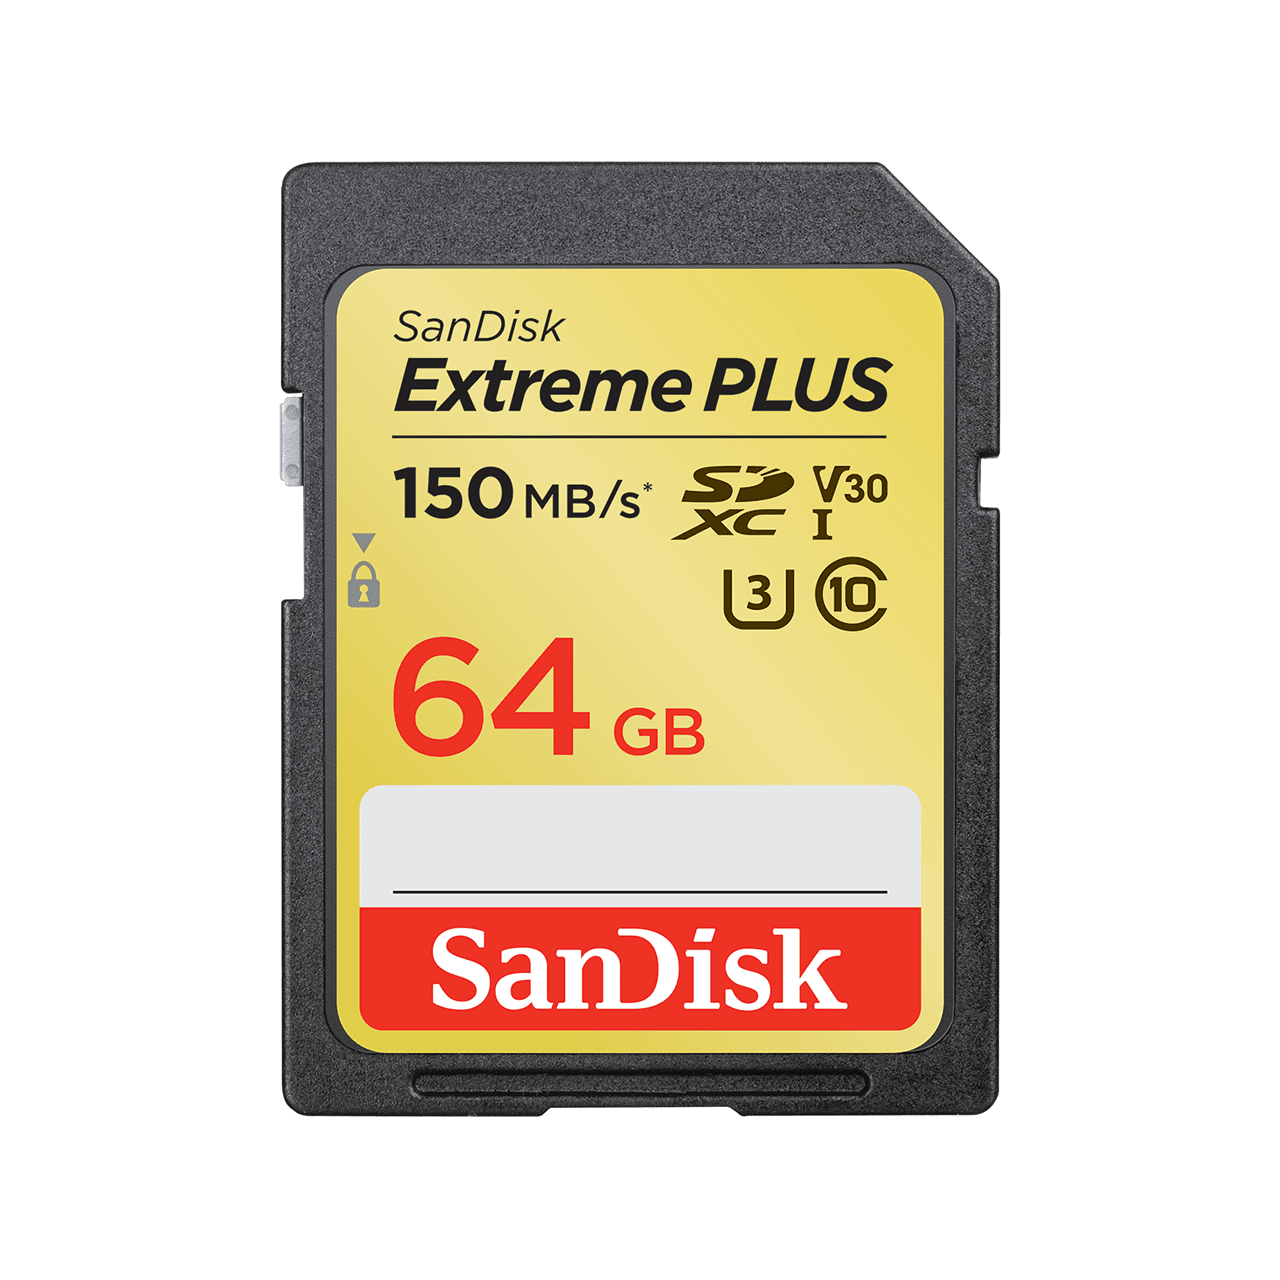 SanDisk extreme plus SD UHS-I 64GB 150mbs product image